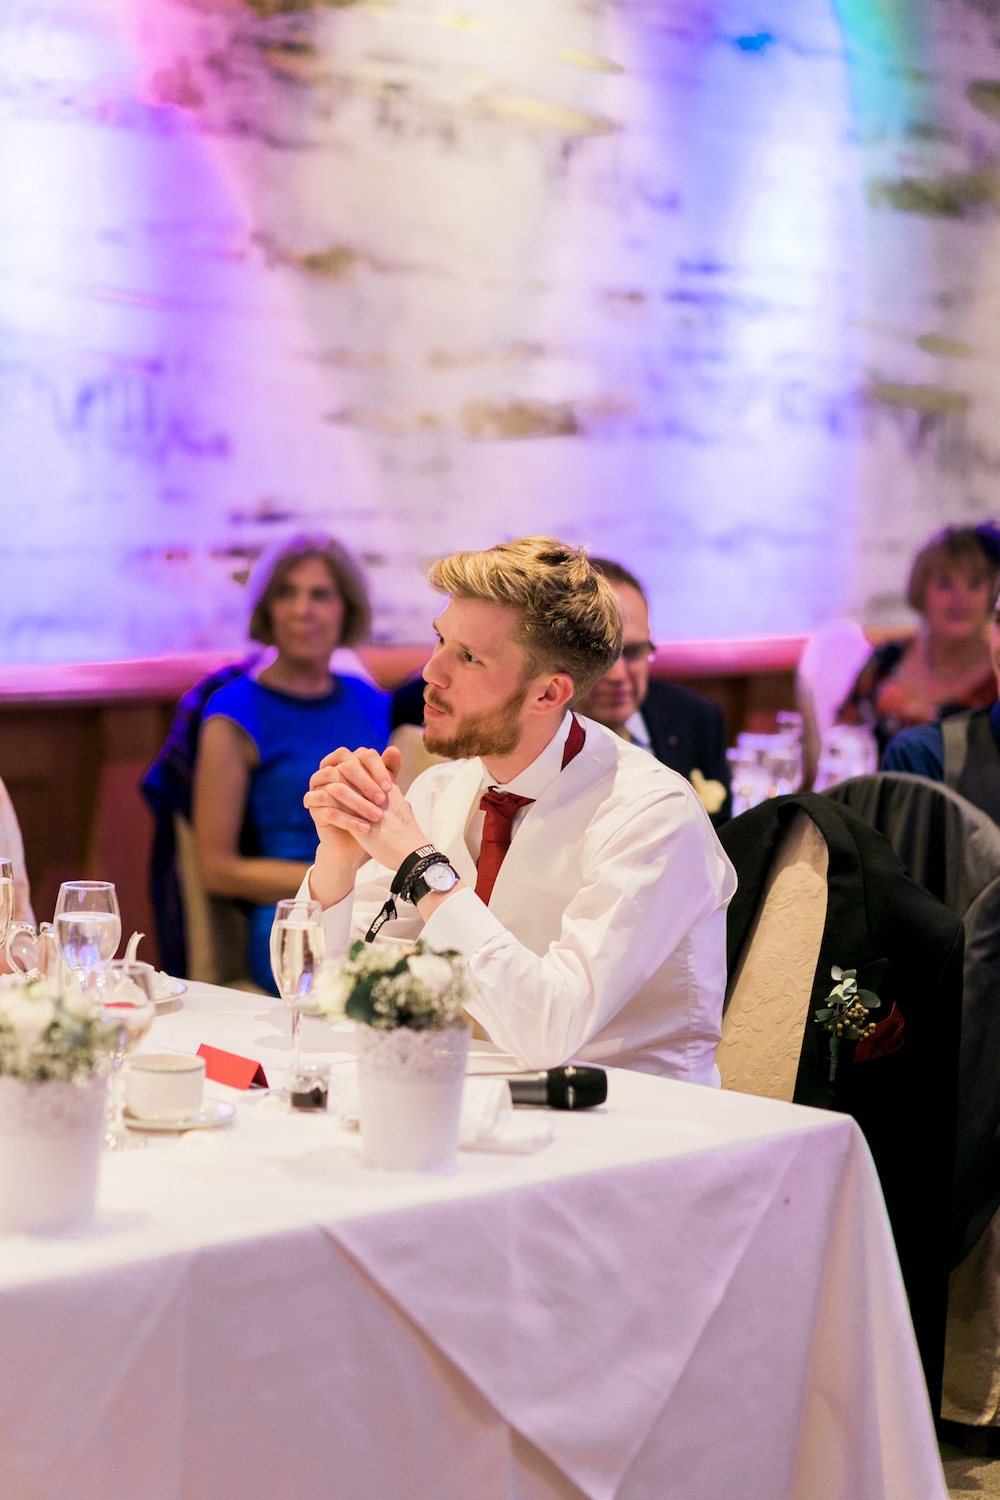 red-and-white-wedding-lancashire-wedding-gibbon-bridge-hotel-in-preston-winter-wedding-jam-table-names-hannah-k-photography-77